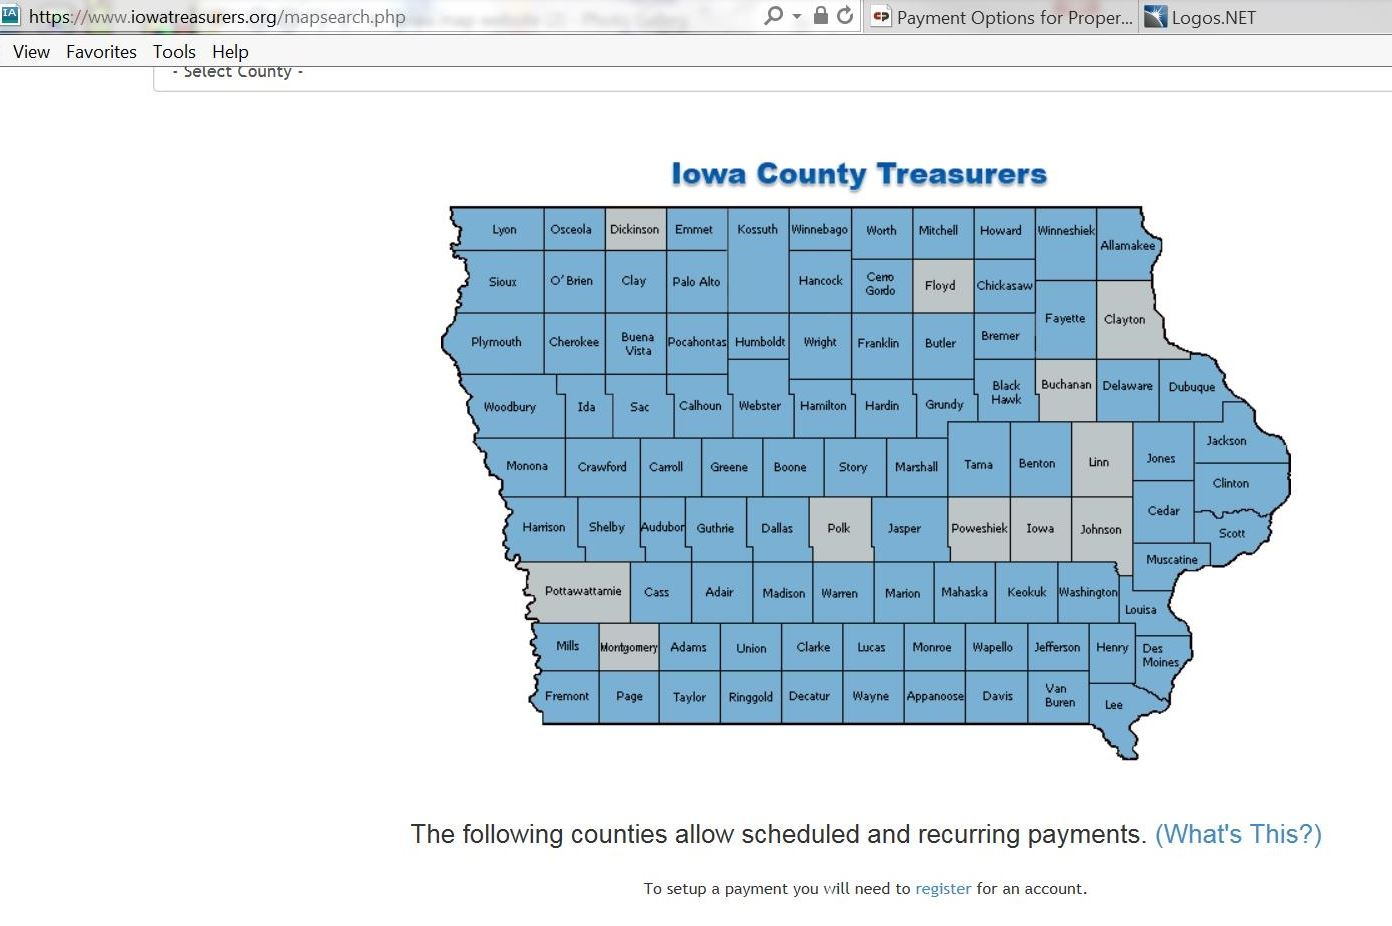 Iowa Map of Counties and how to Video link